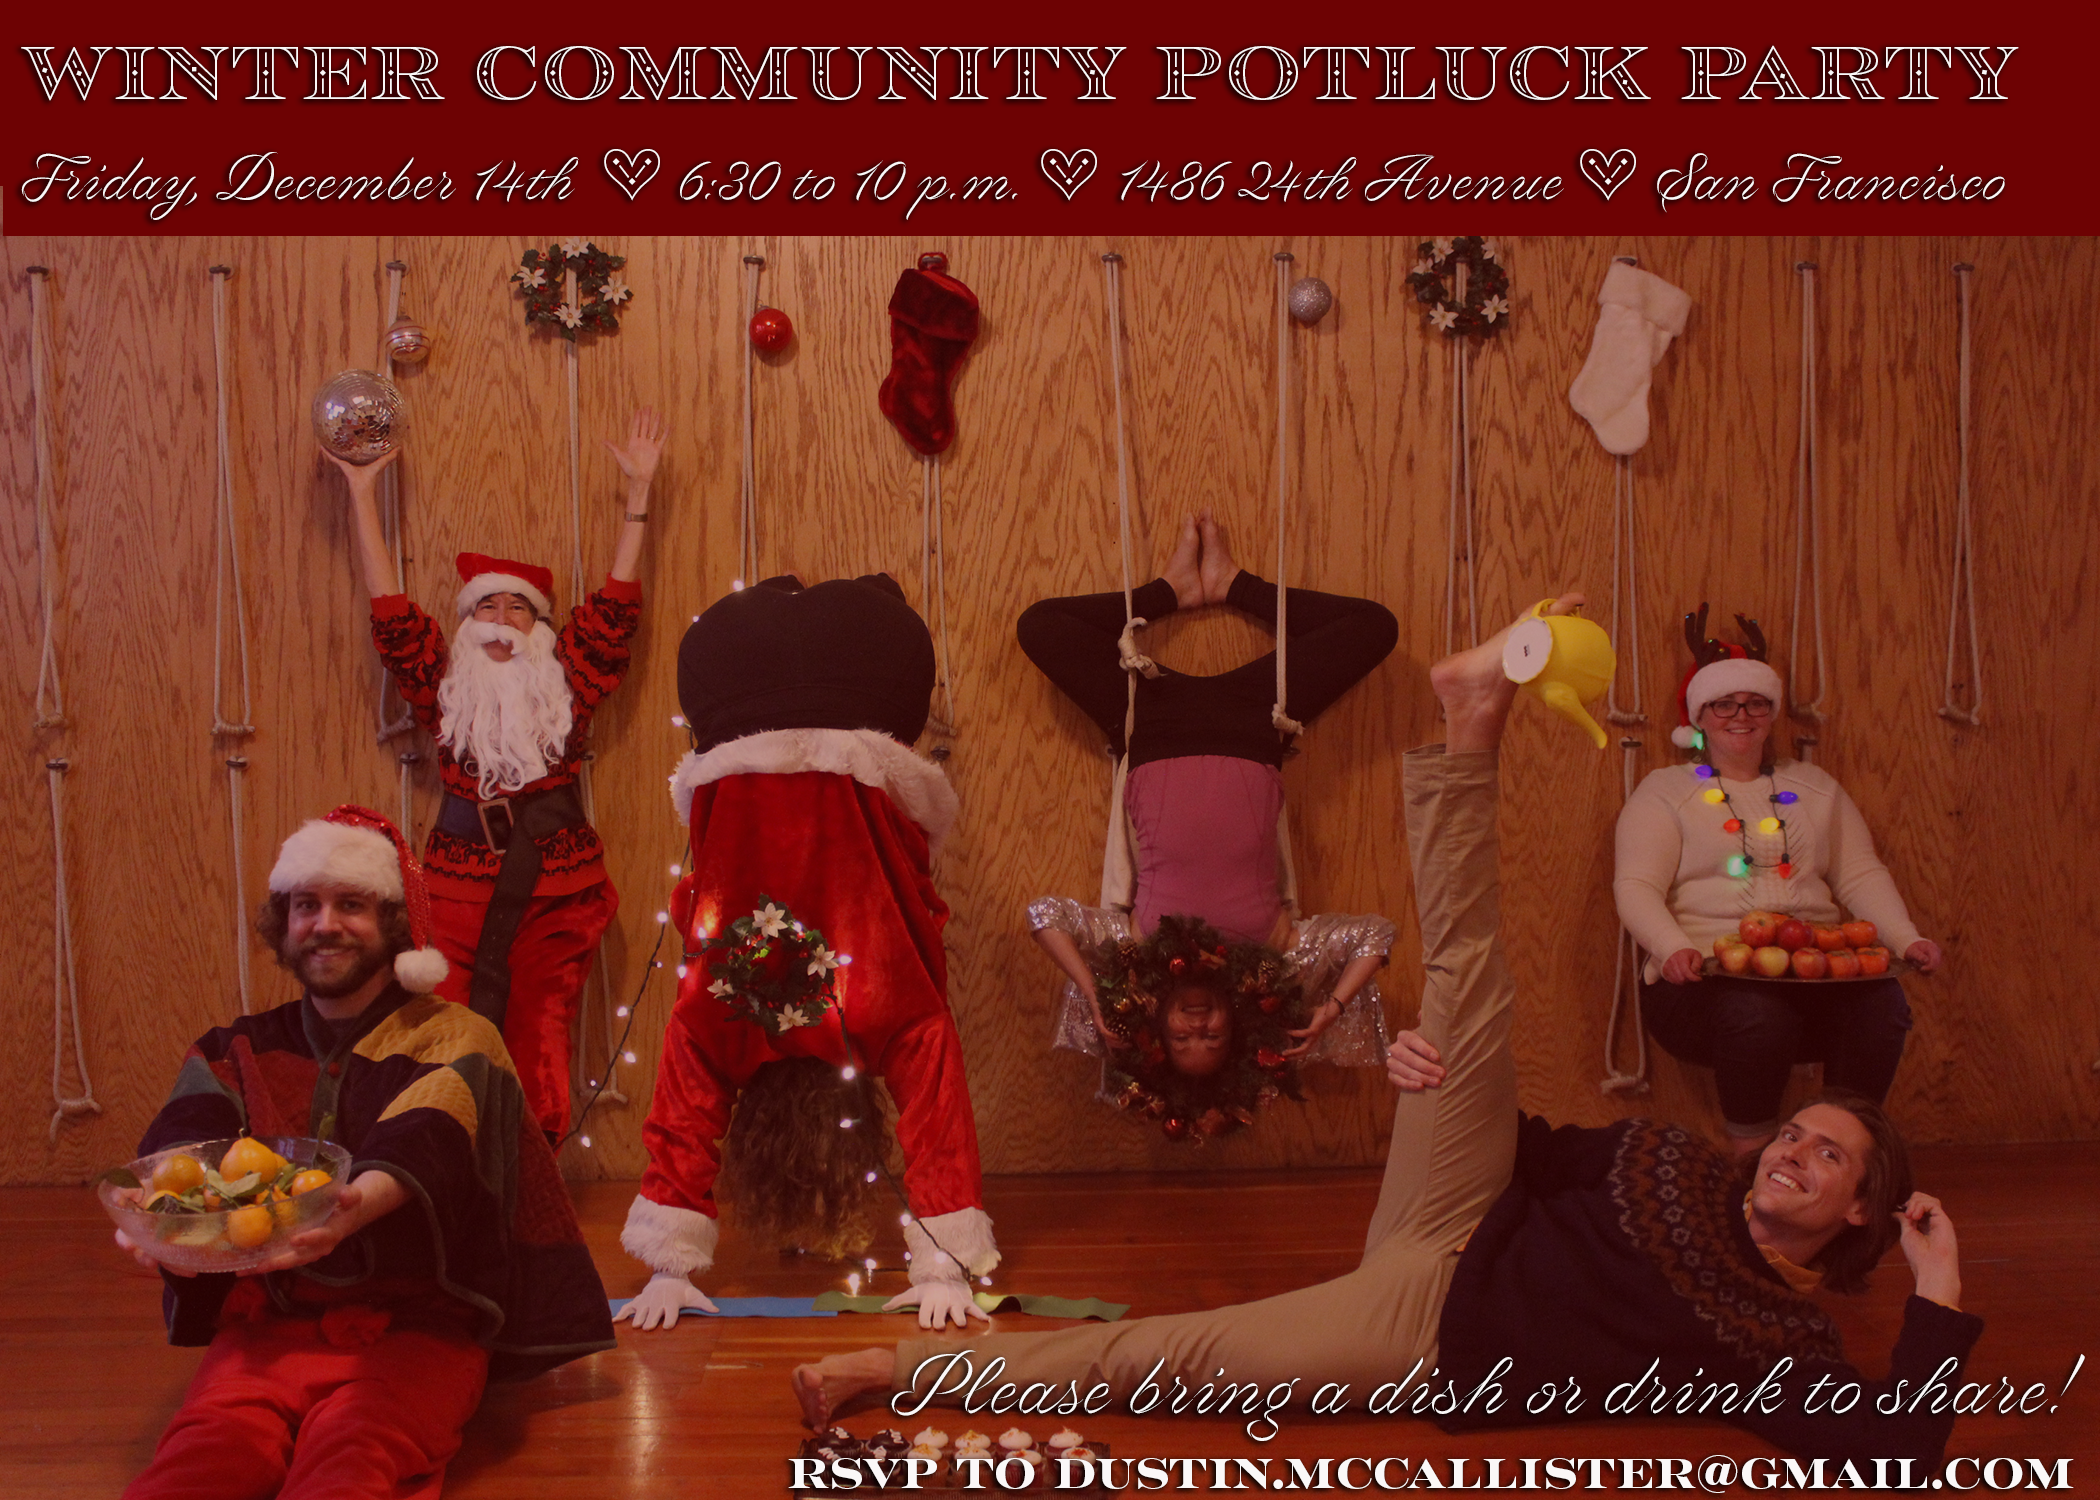 Dustin McCallister Yoga Potluck